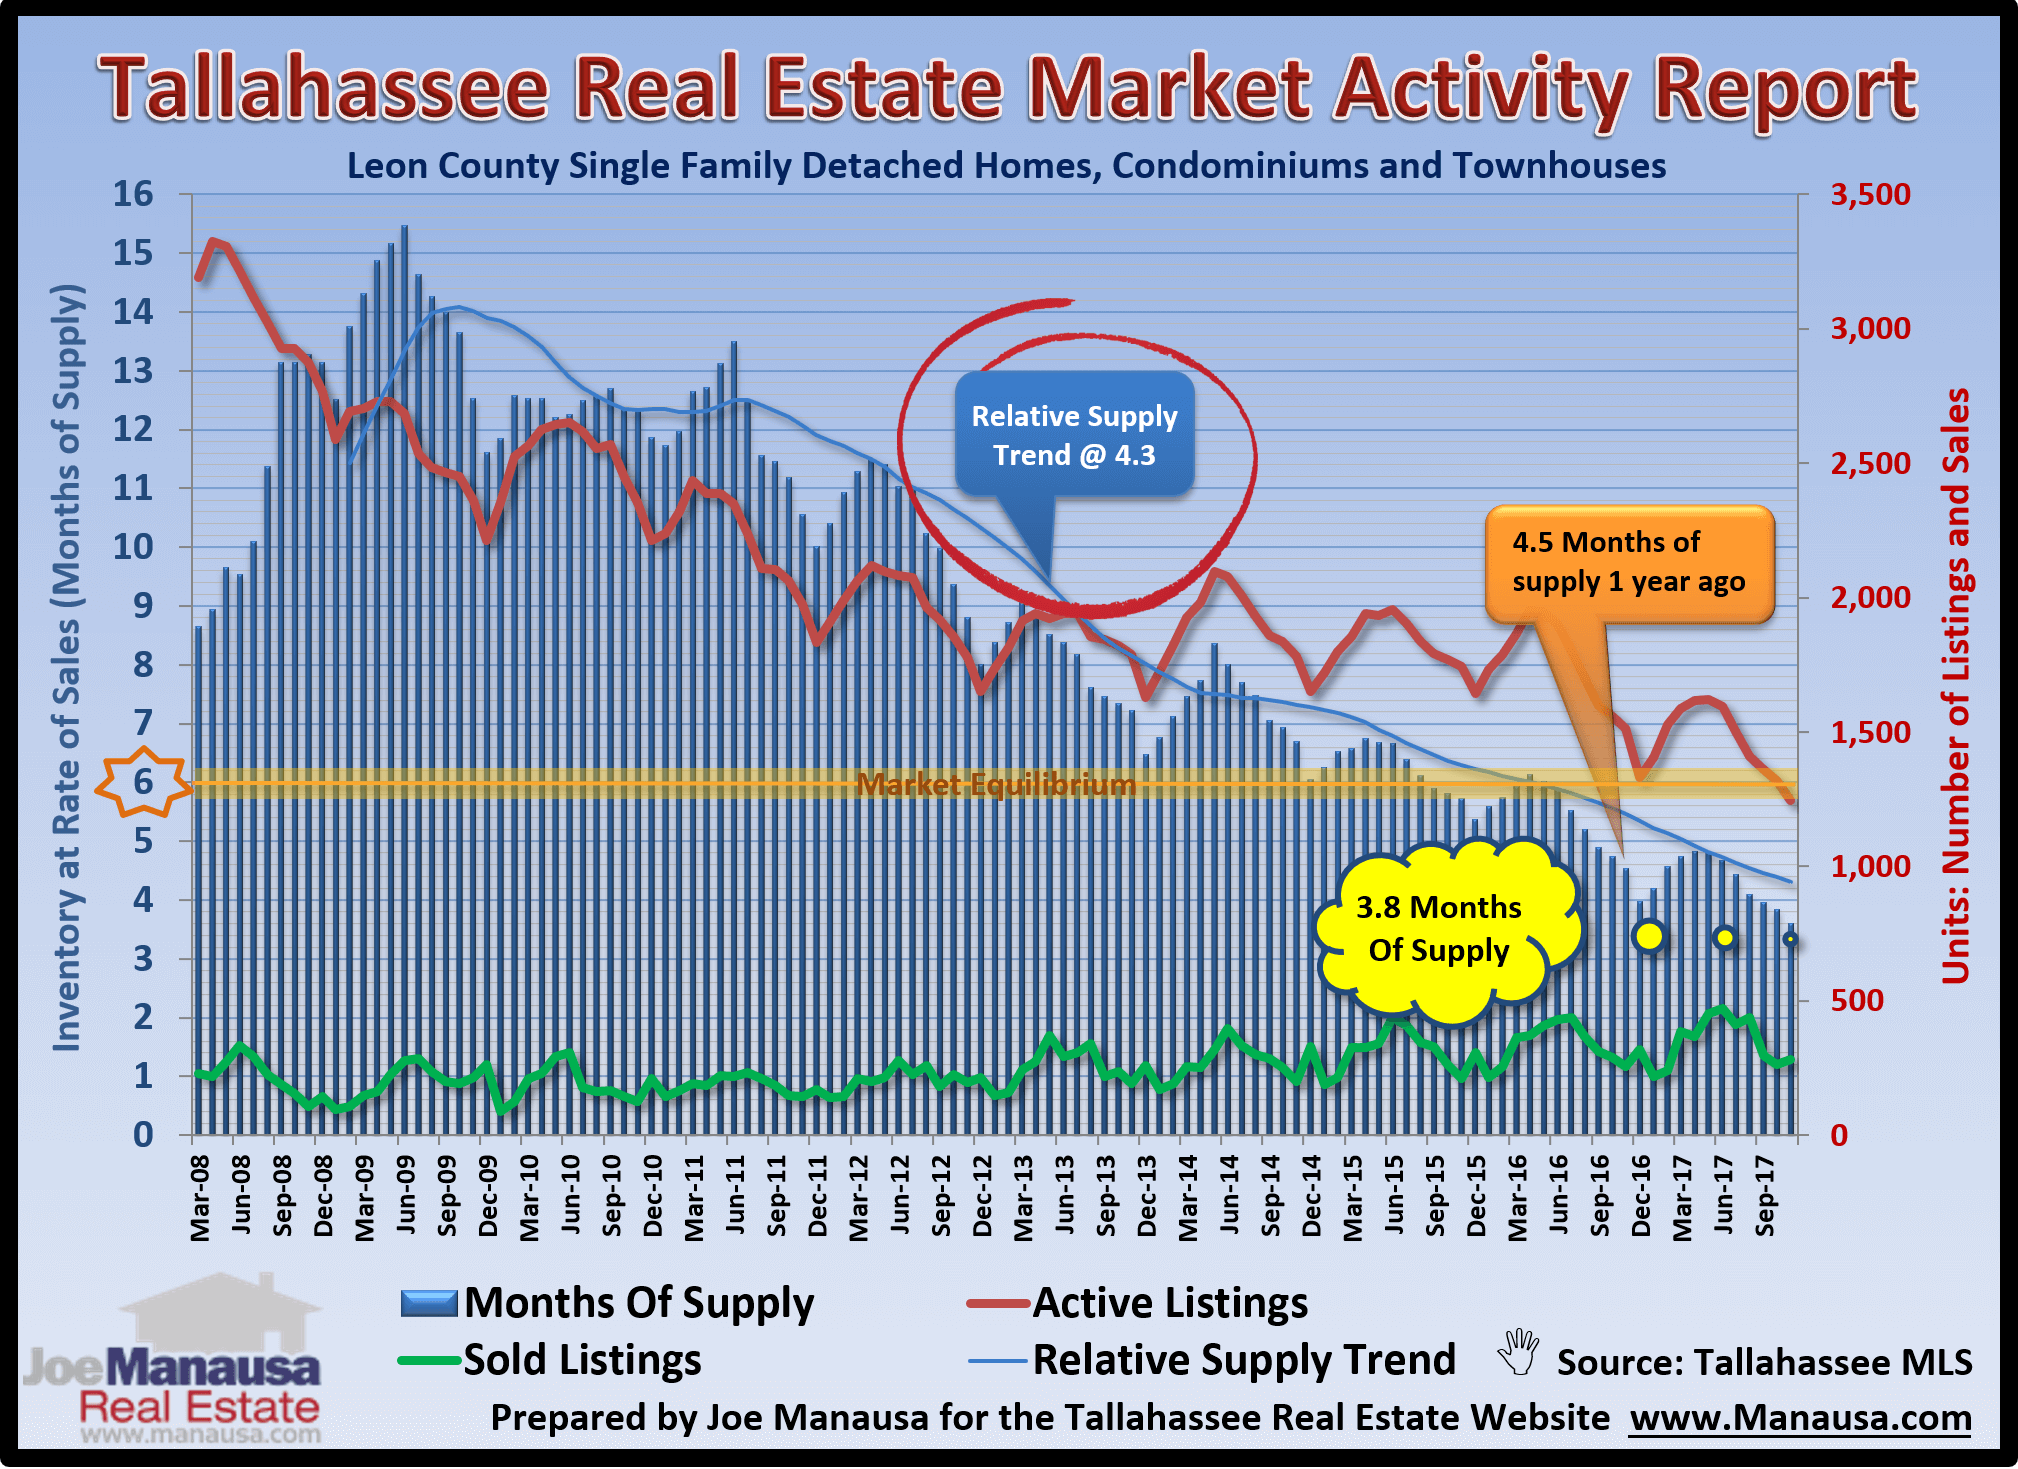 The inventory of homes for sale in Tallahassee has declined to levels that are pushing values higher